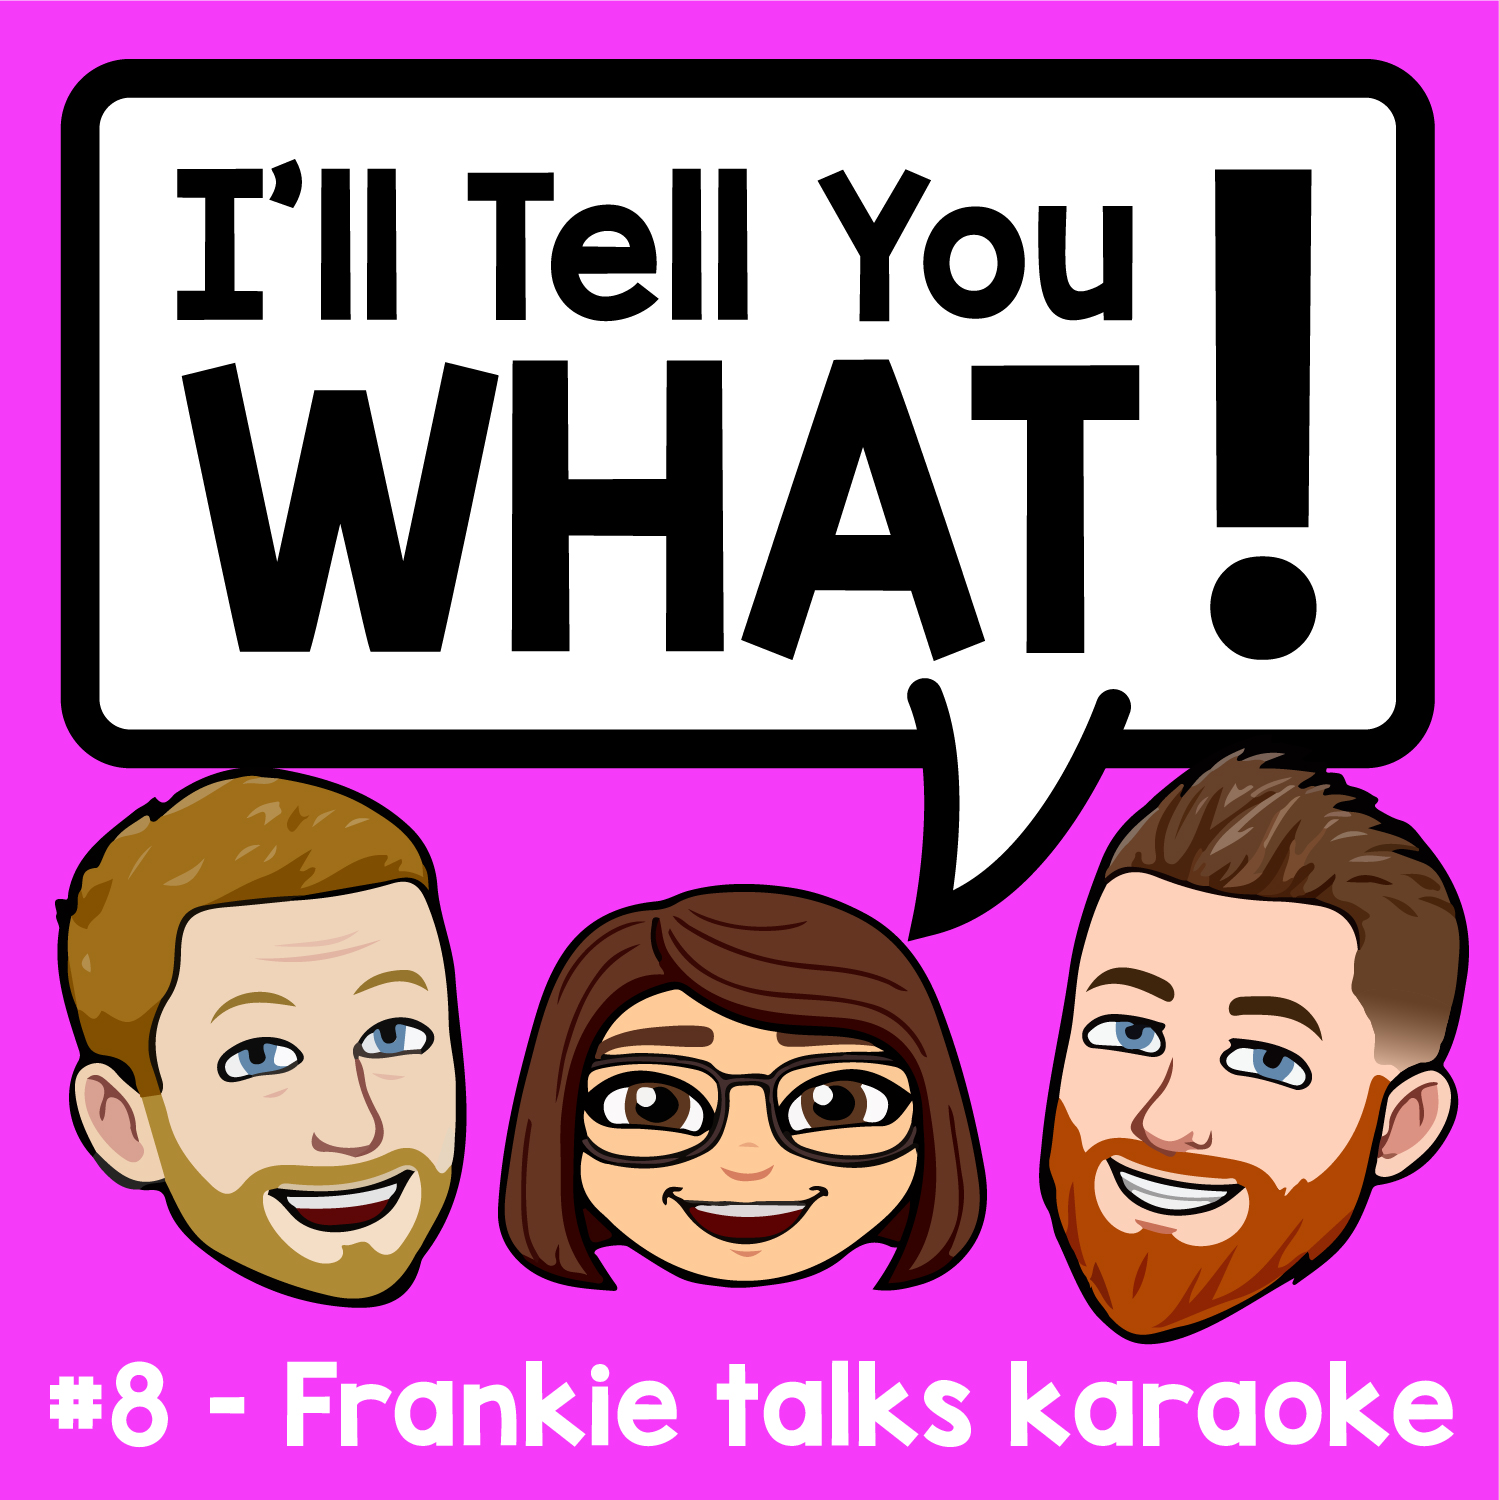 Frankie-and-karaoke-ITYW-Ep008-Square-14.jpg